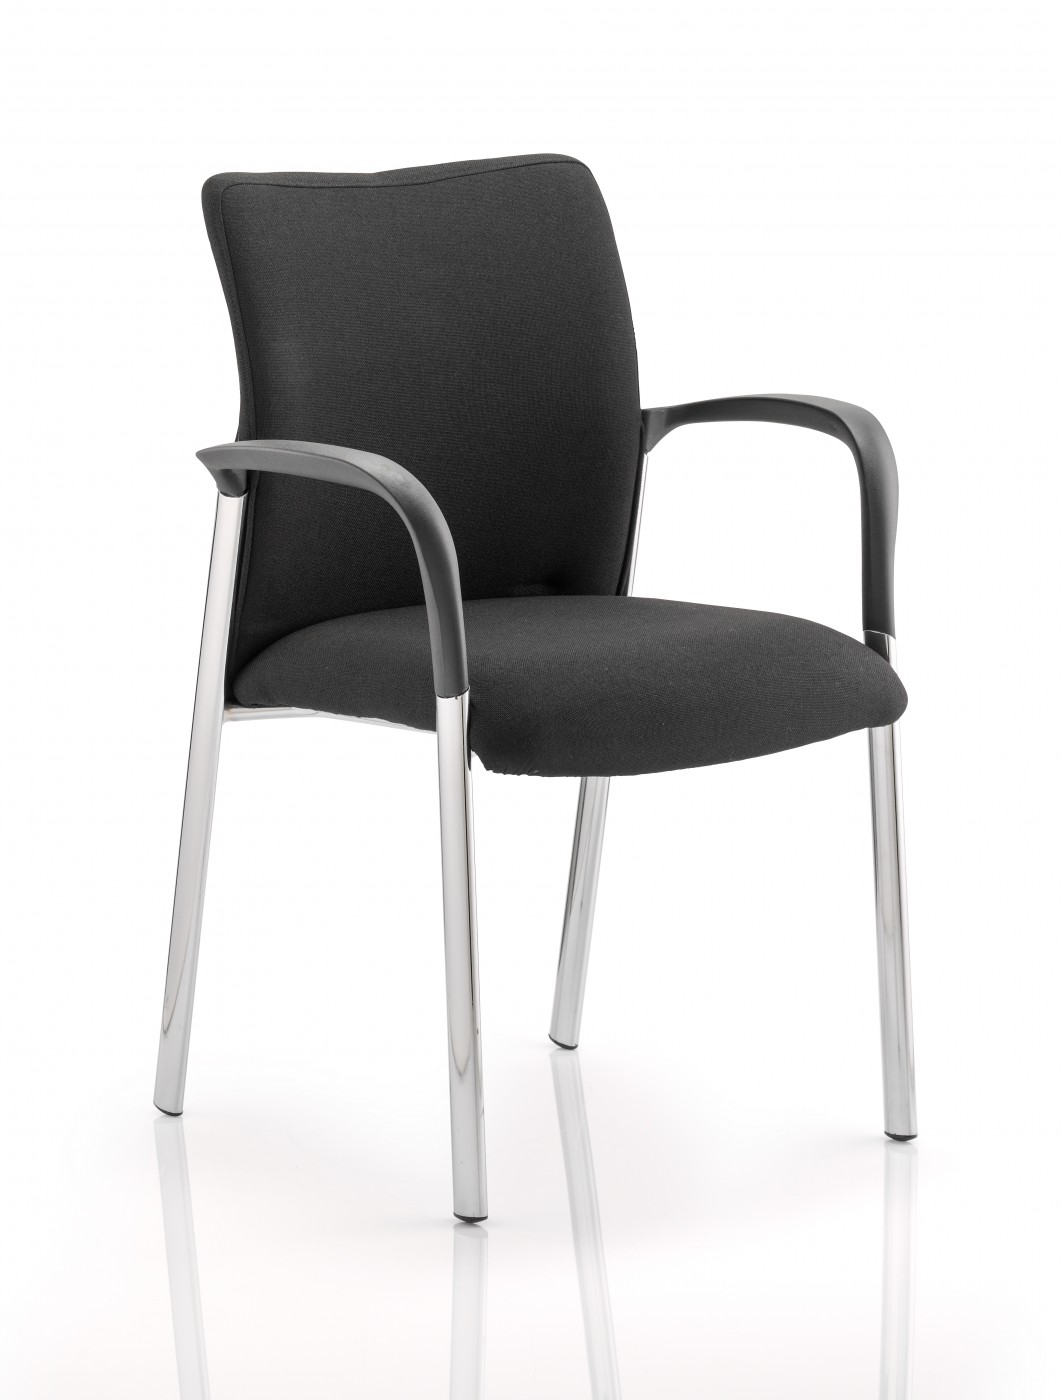 stackable chairs with arms staples big and tall academy fabric visitors conference chair 121